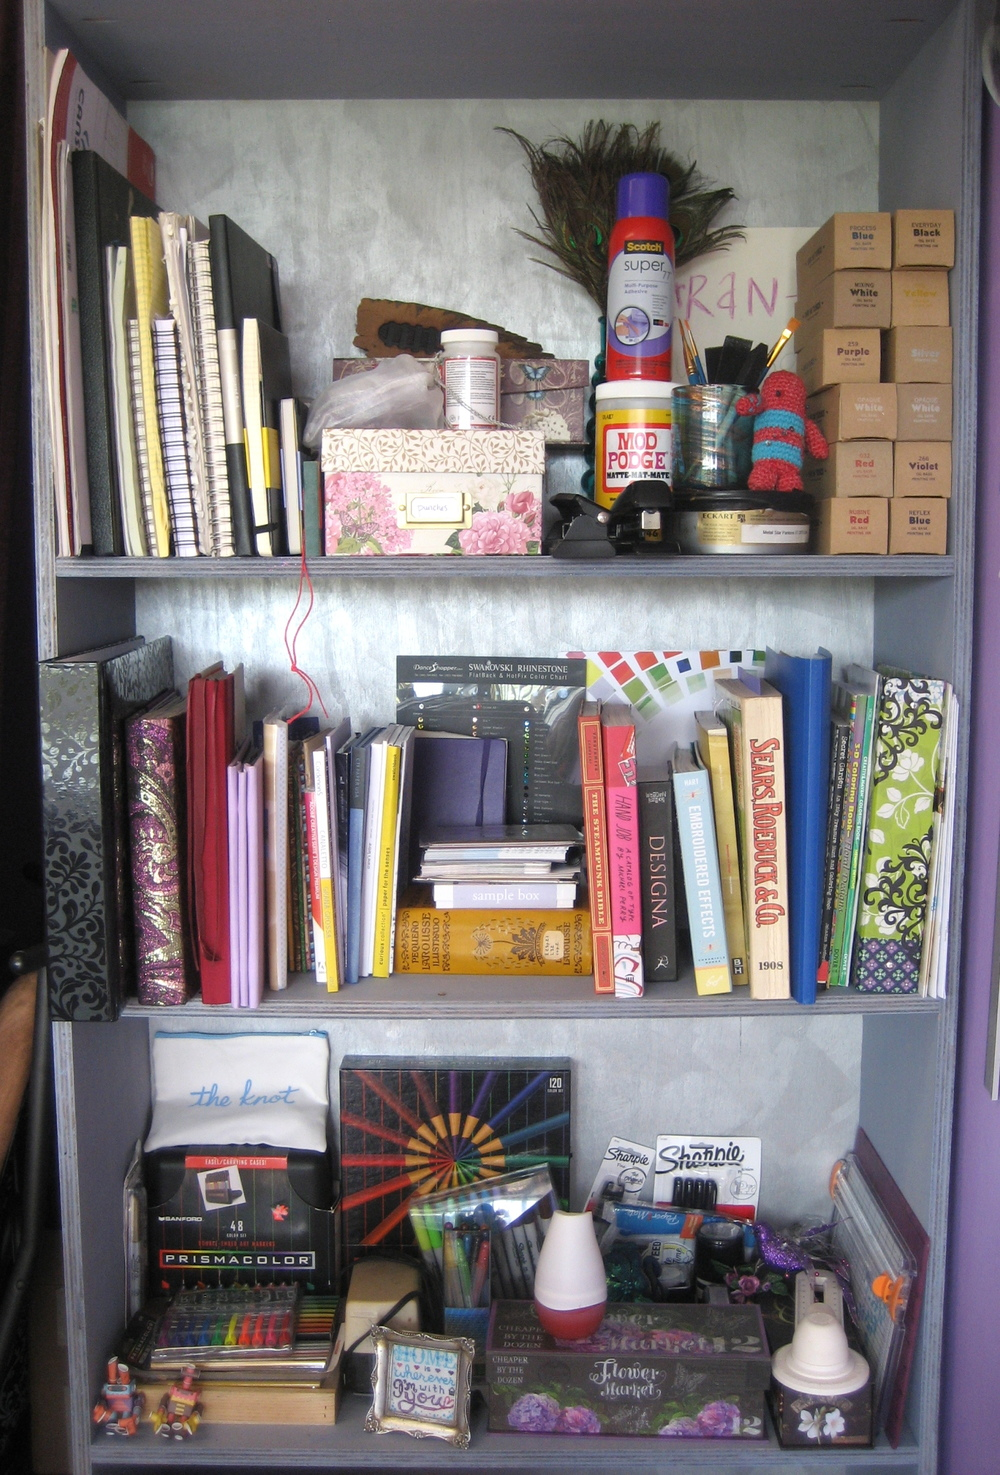 Colorful books, samples, and supplies